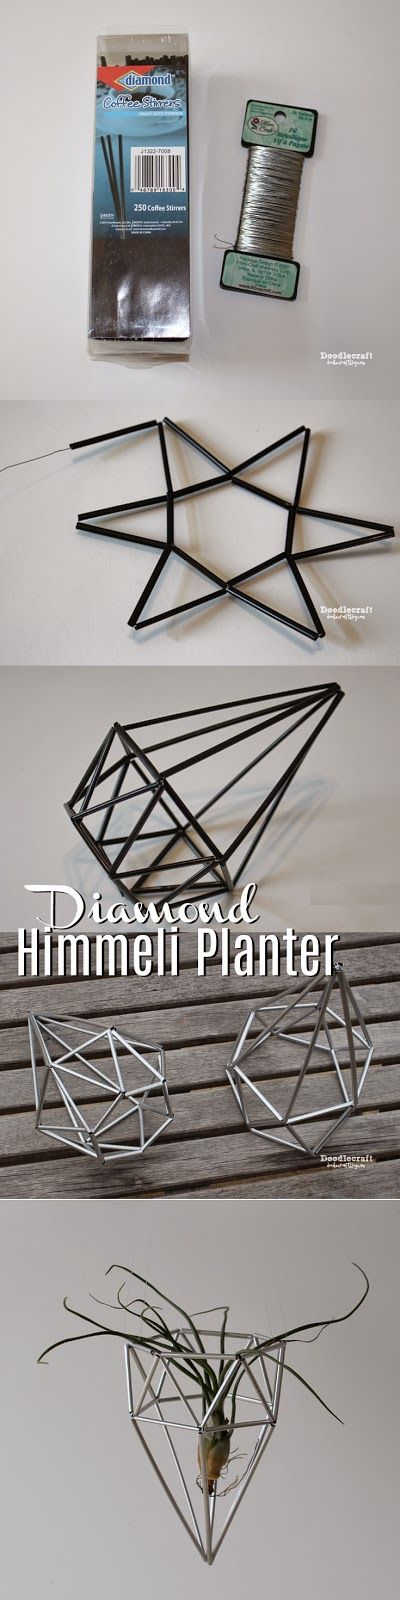 Diamond Himmeli Planter!